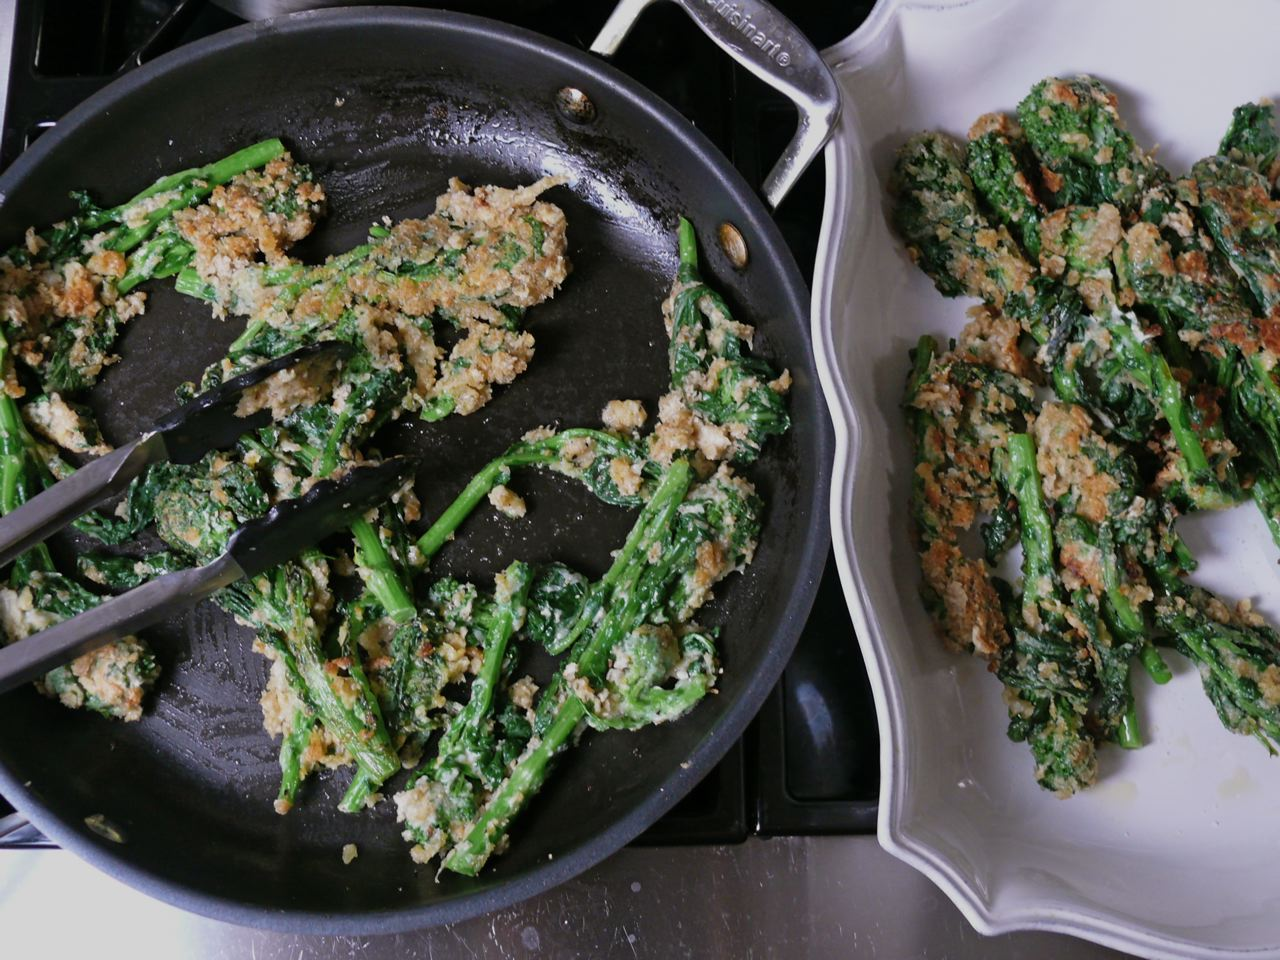 porcini-fried rapini (broccoli rabe)